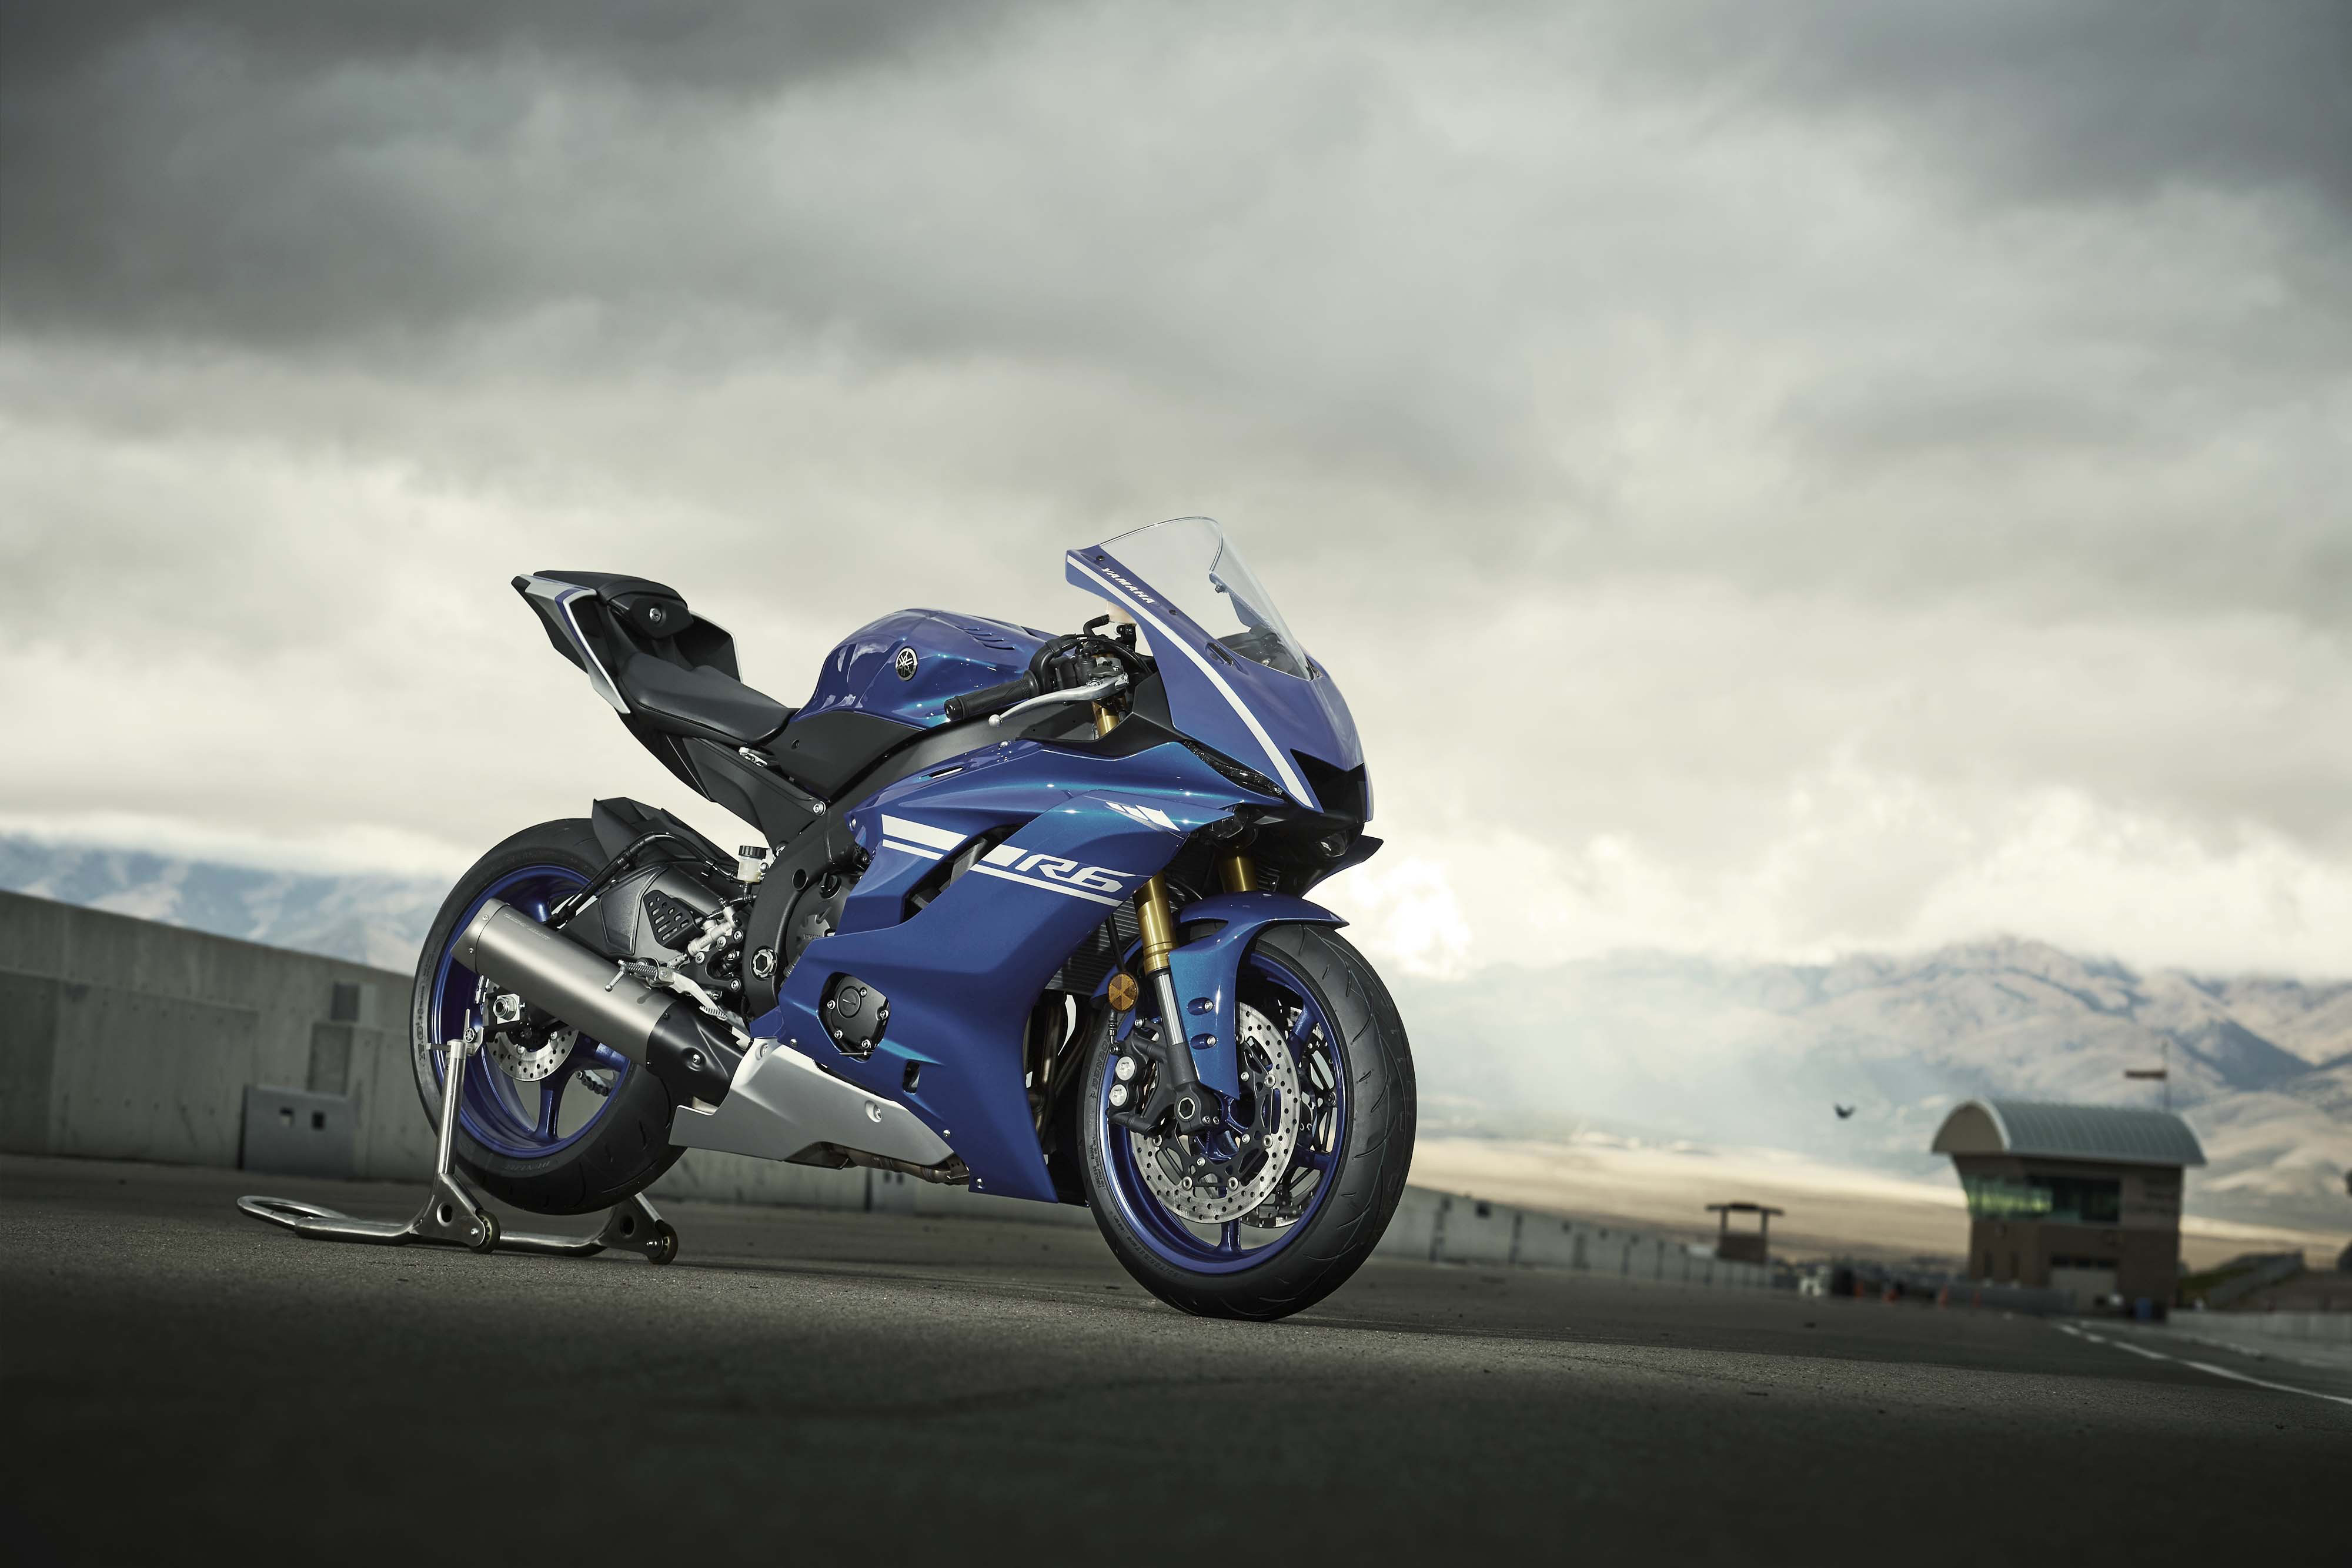 Yamaha R6 2017 HD Bikes 4k Wallpapers Images Backgrounds Photos